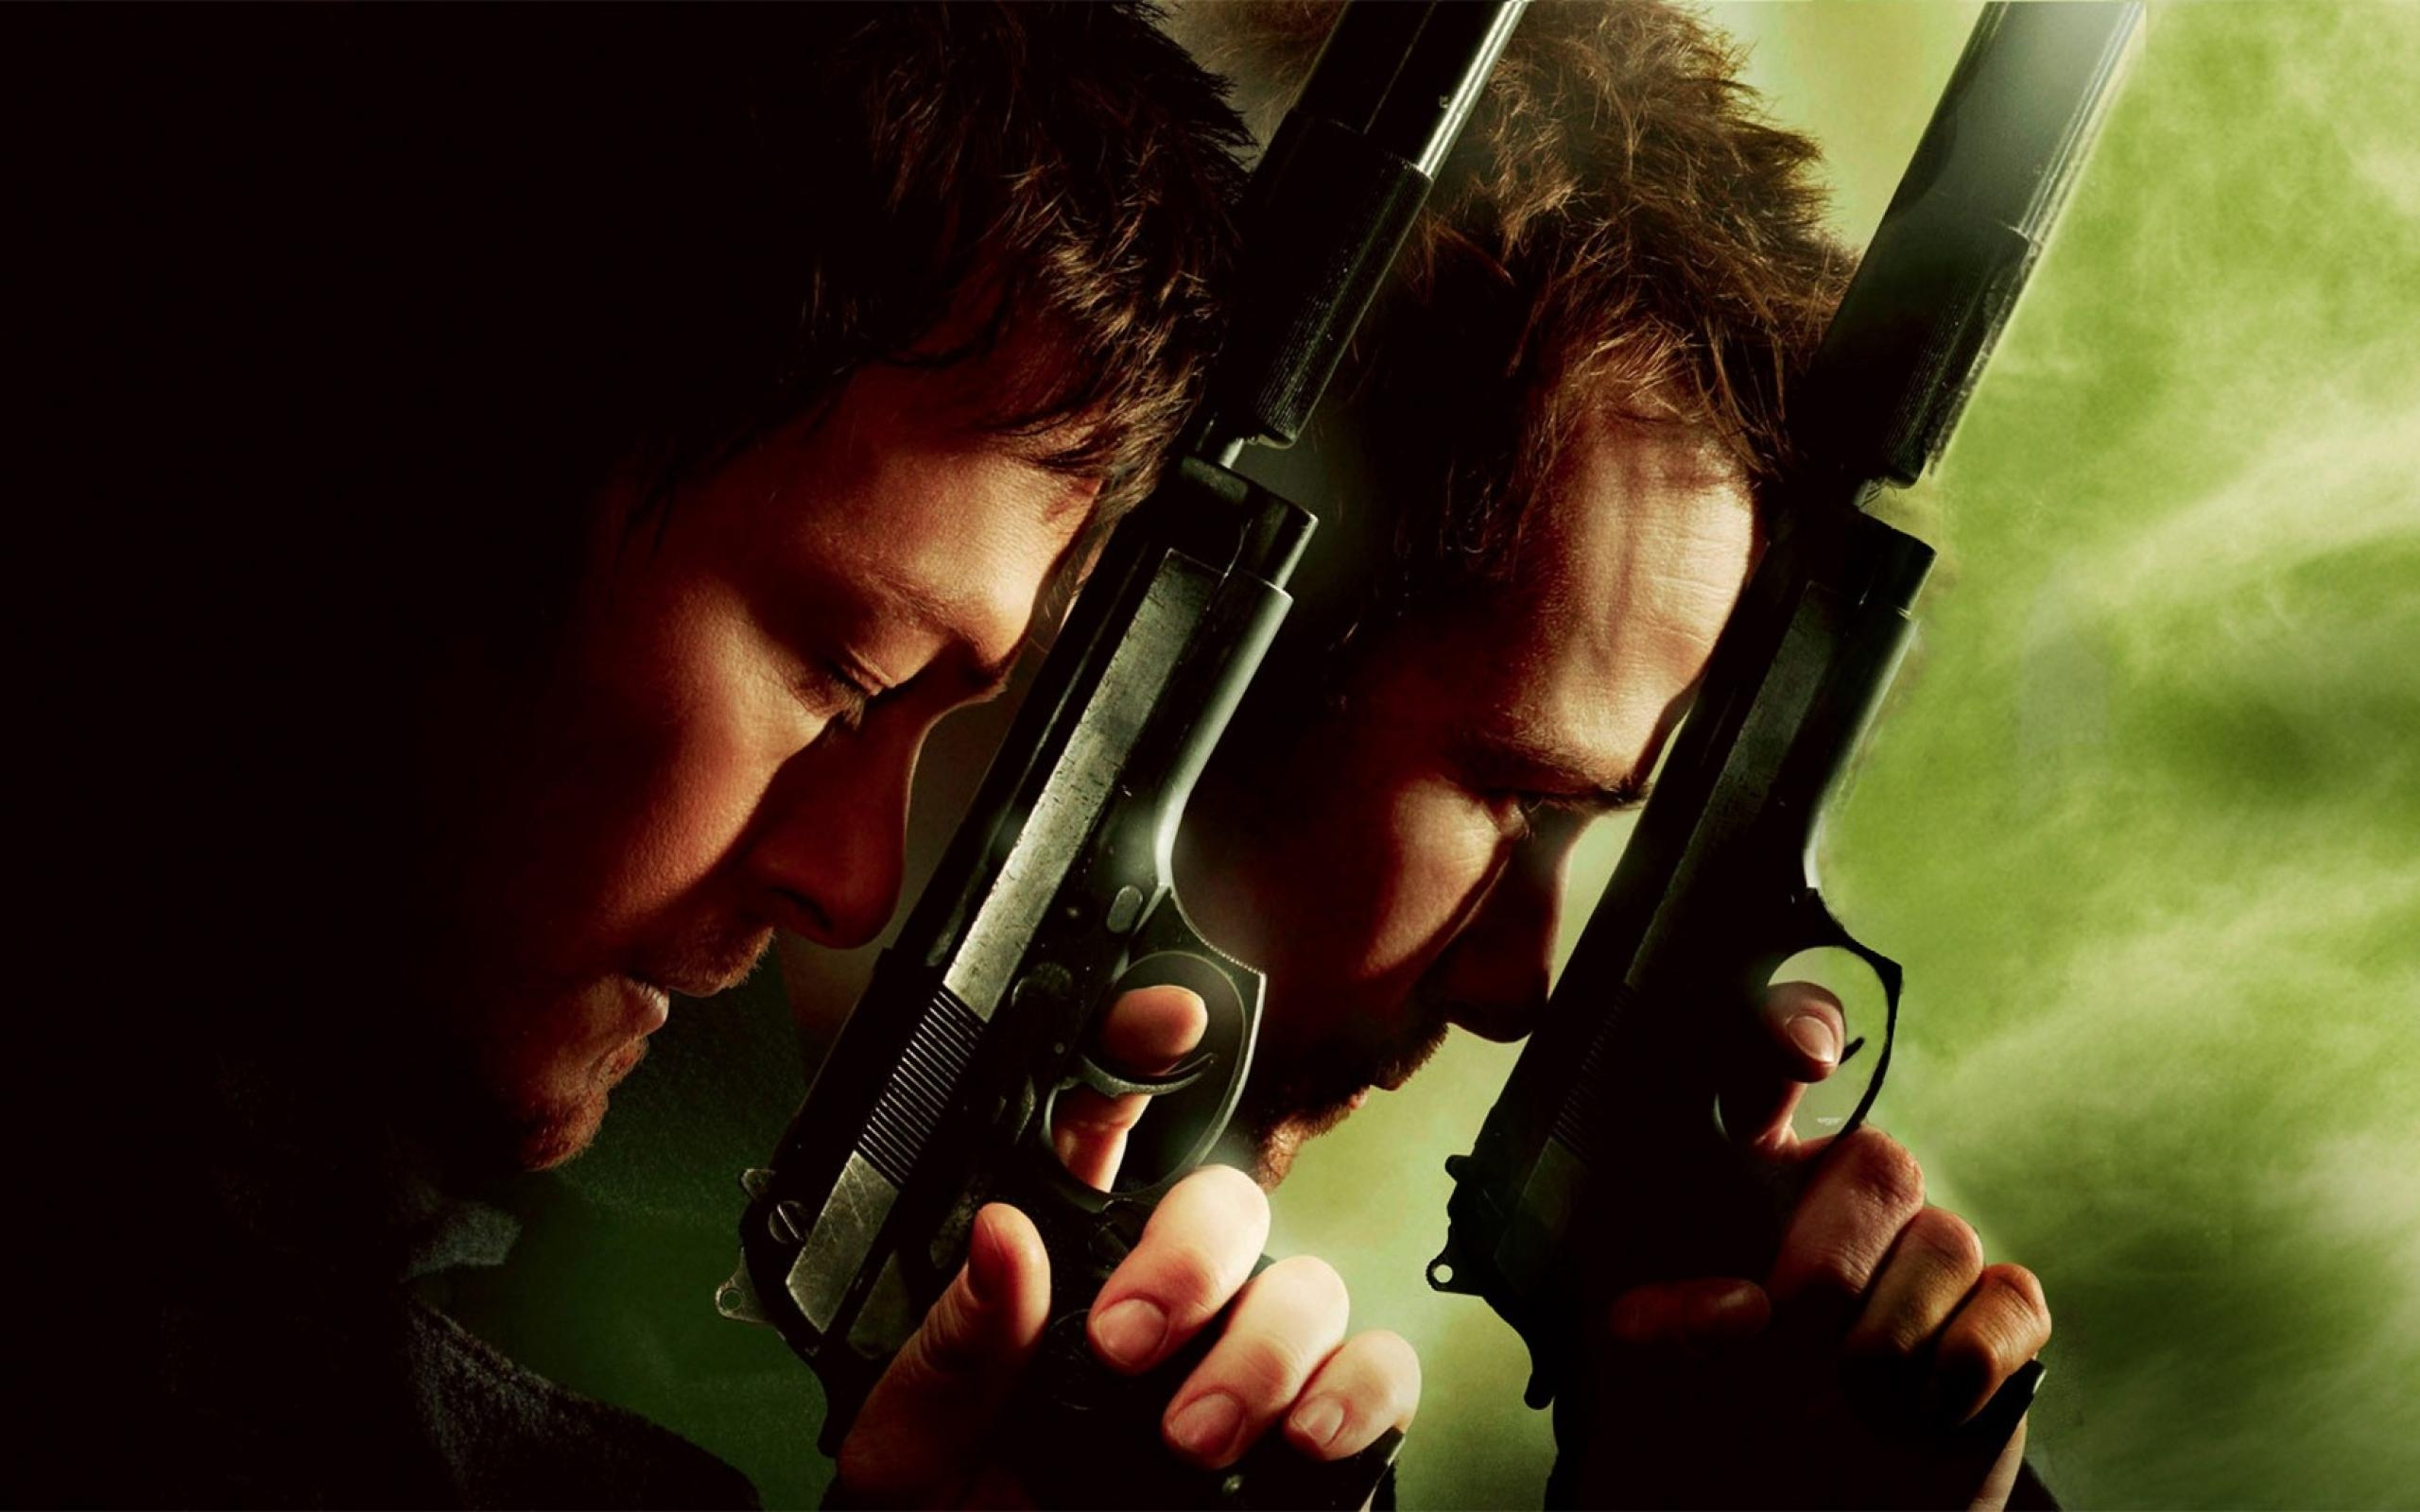 3 The Boondock Saints Ii: All Saints Day Hd Wallpapers Intended For Boondock Saints Wall Art (Image 2 of 20)